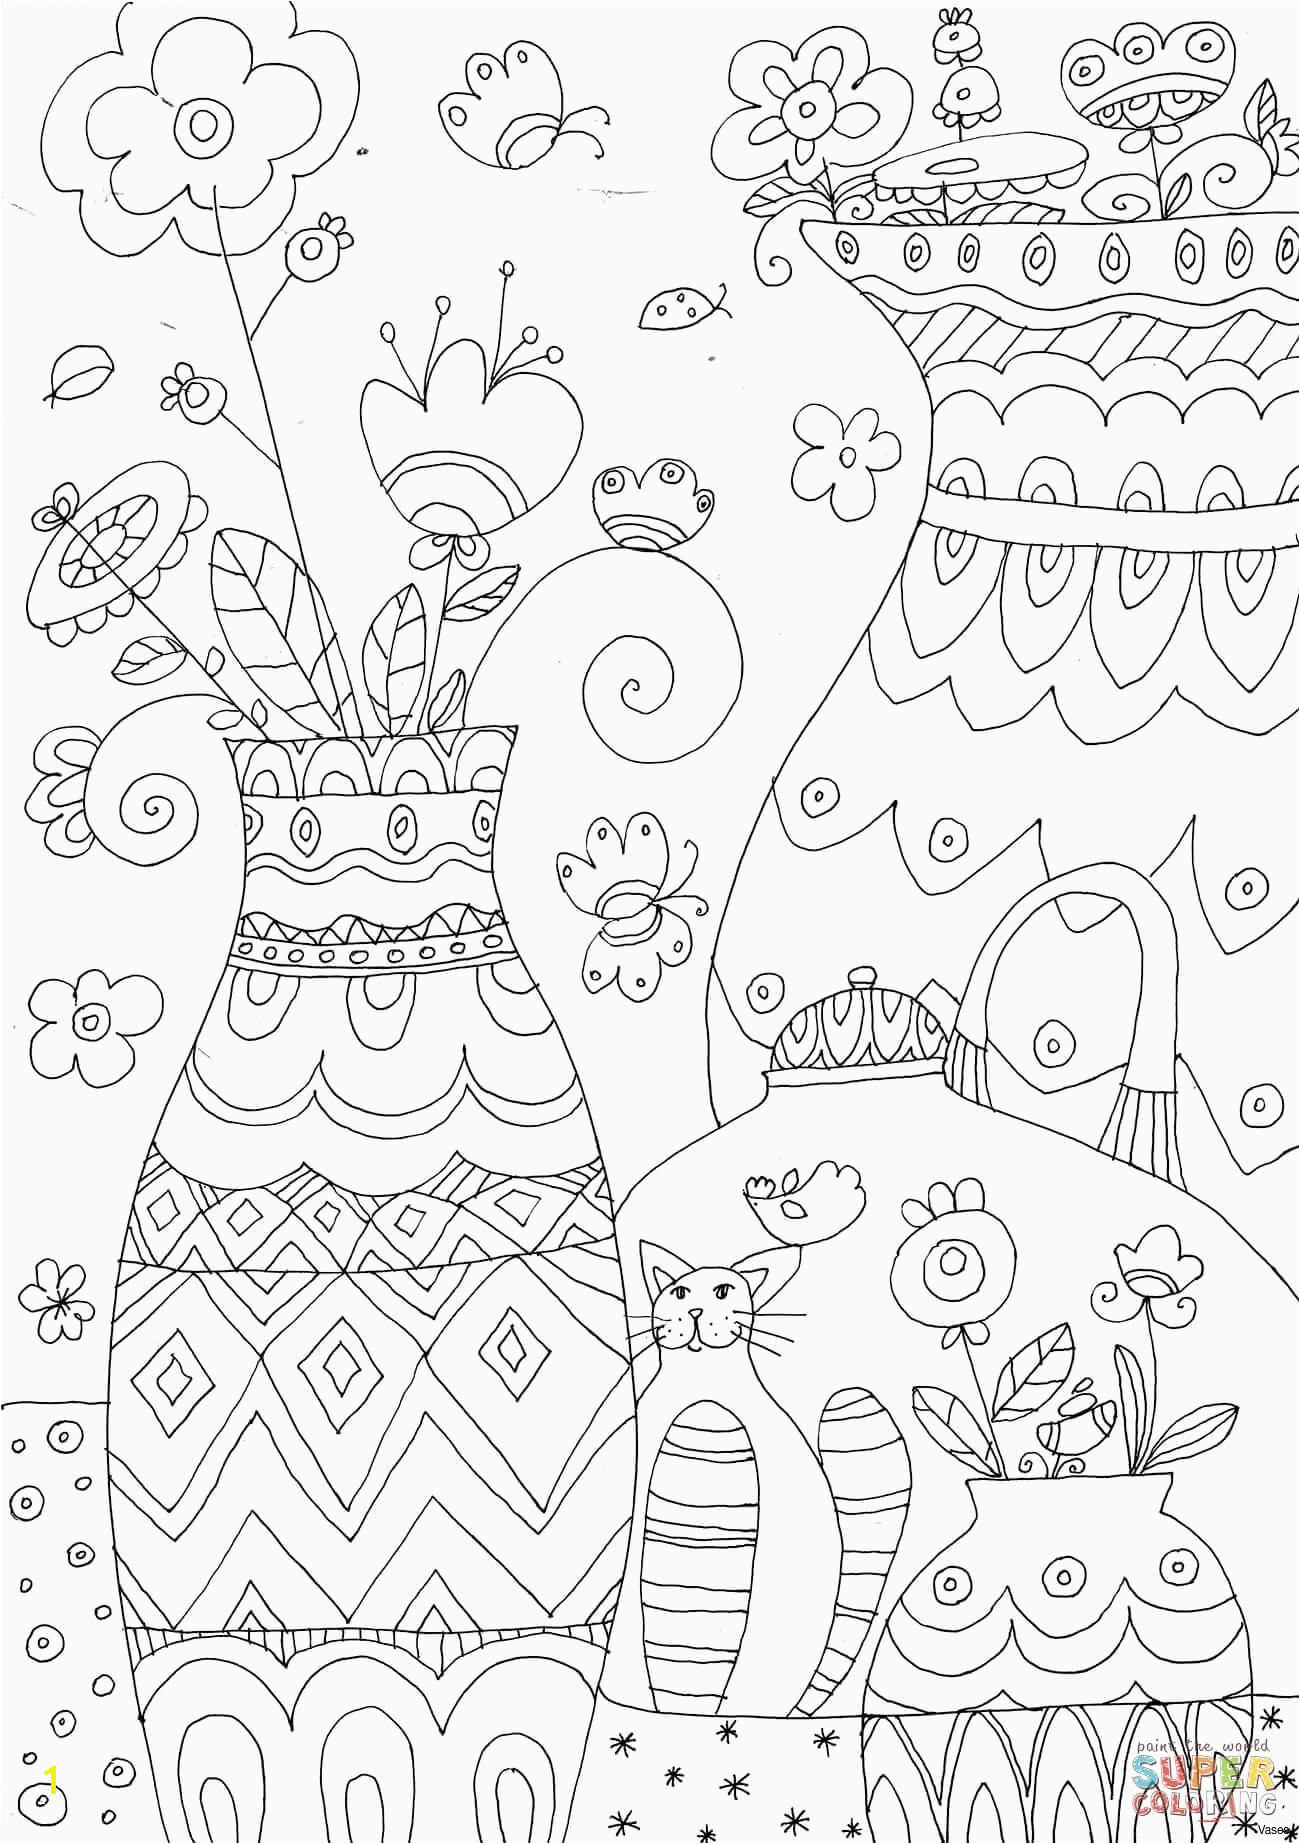 Best of cookies coloring pages Download 11 m Cookie Coloring Pages Fresh Vases Flowers